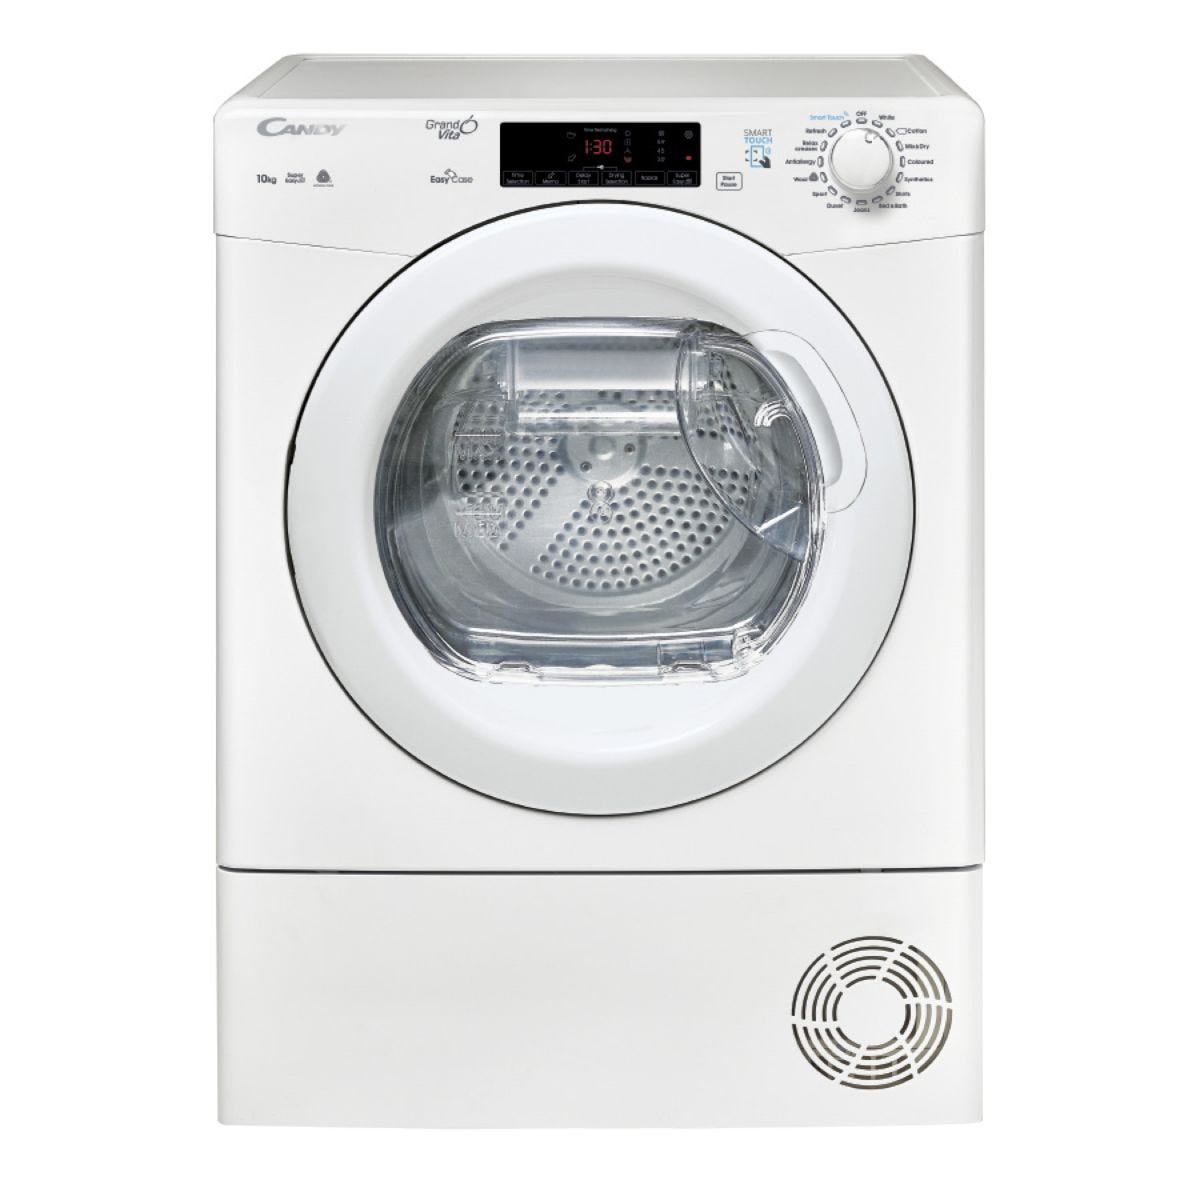 Candy GSVC10TE 10kg Tumble Dryer - White